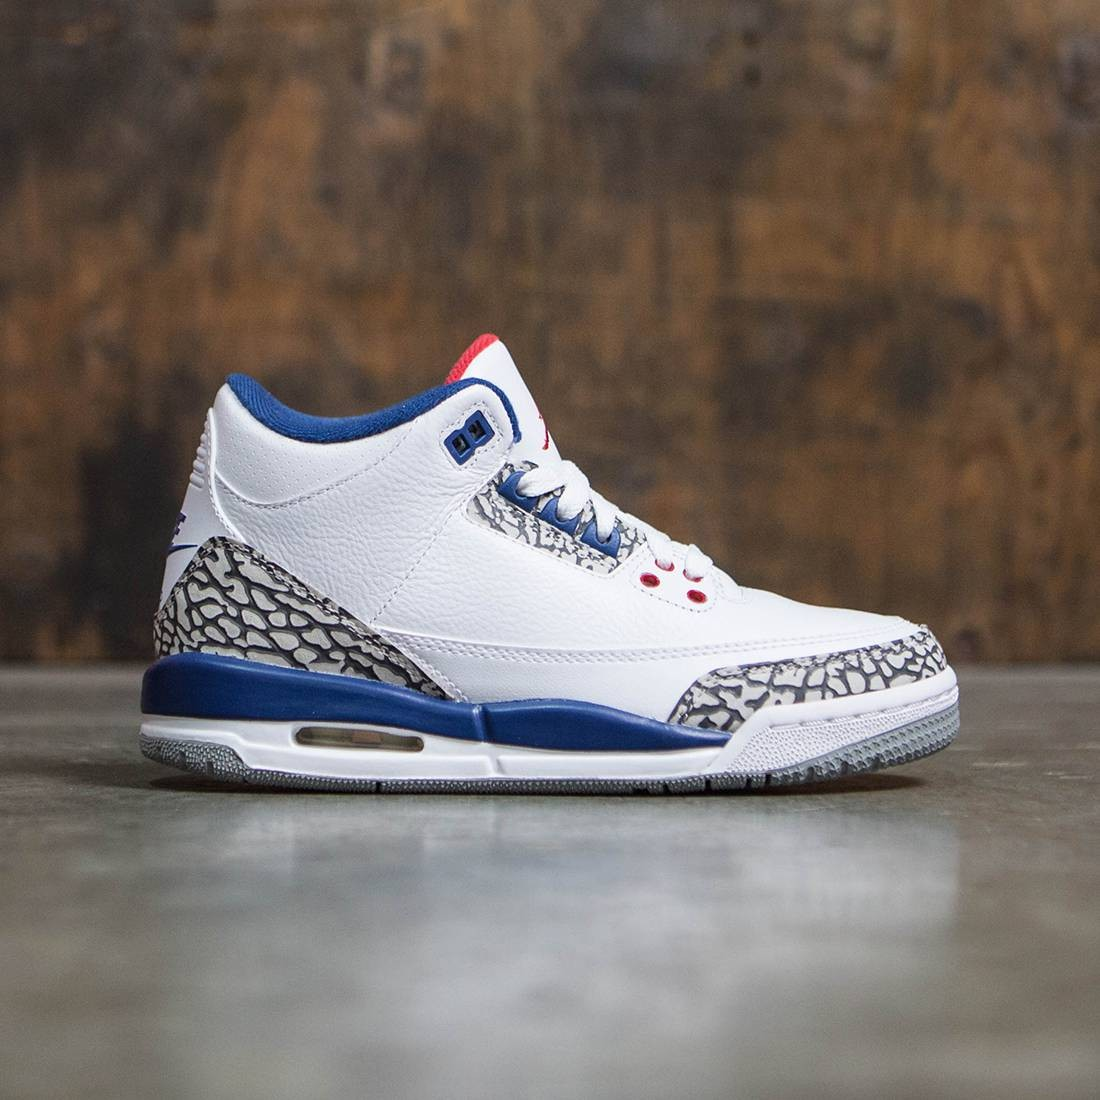 Jordan Big Kids AIR JORDAN 3 RETRO OG BG True Blue  white   fire red     Jordan Big Kids AIR JORDAN 3 RETRO OG BG True Blue  white   fire red true  blue cement grey